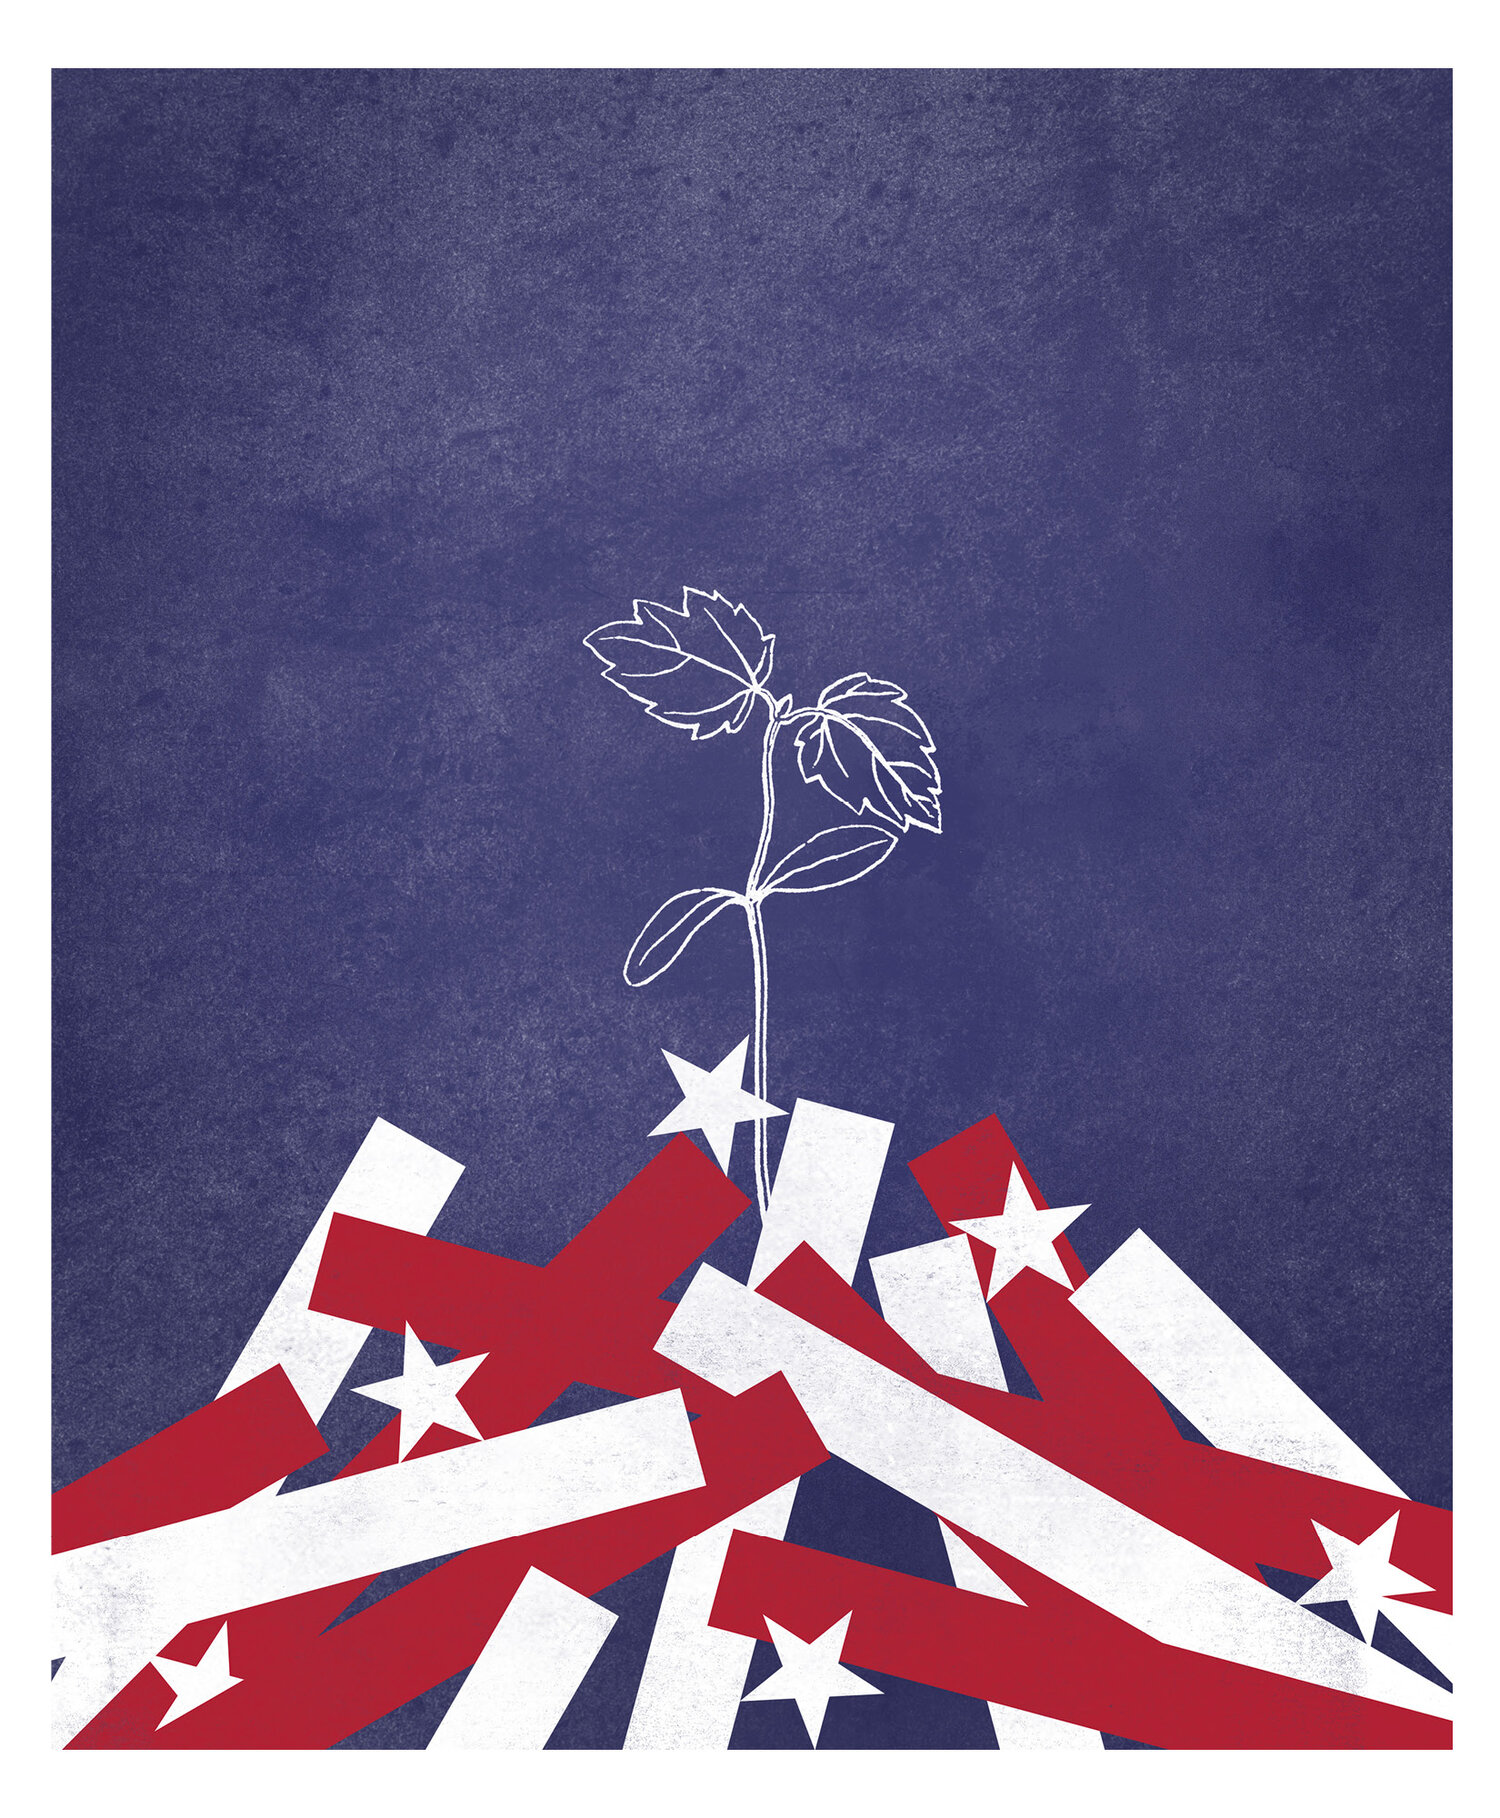 Illustration of plant growing from tattered flag.